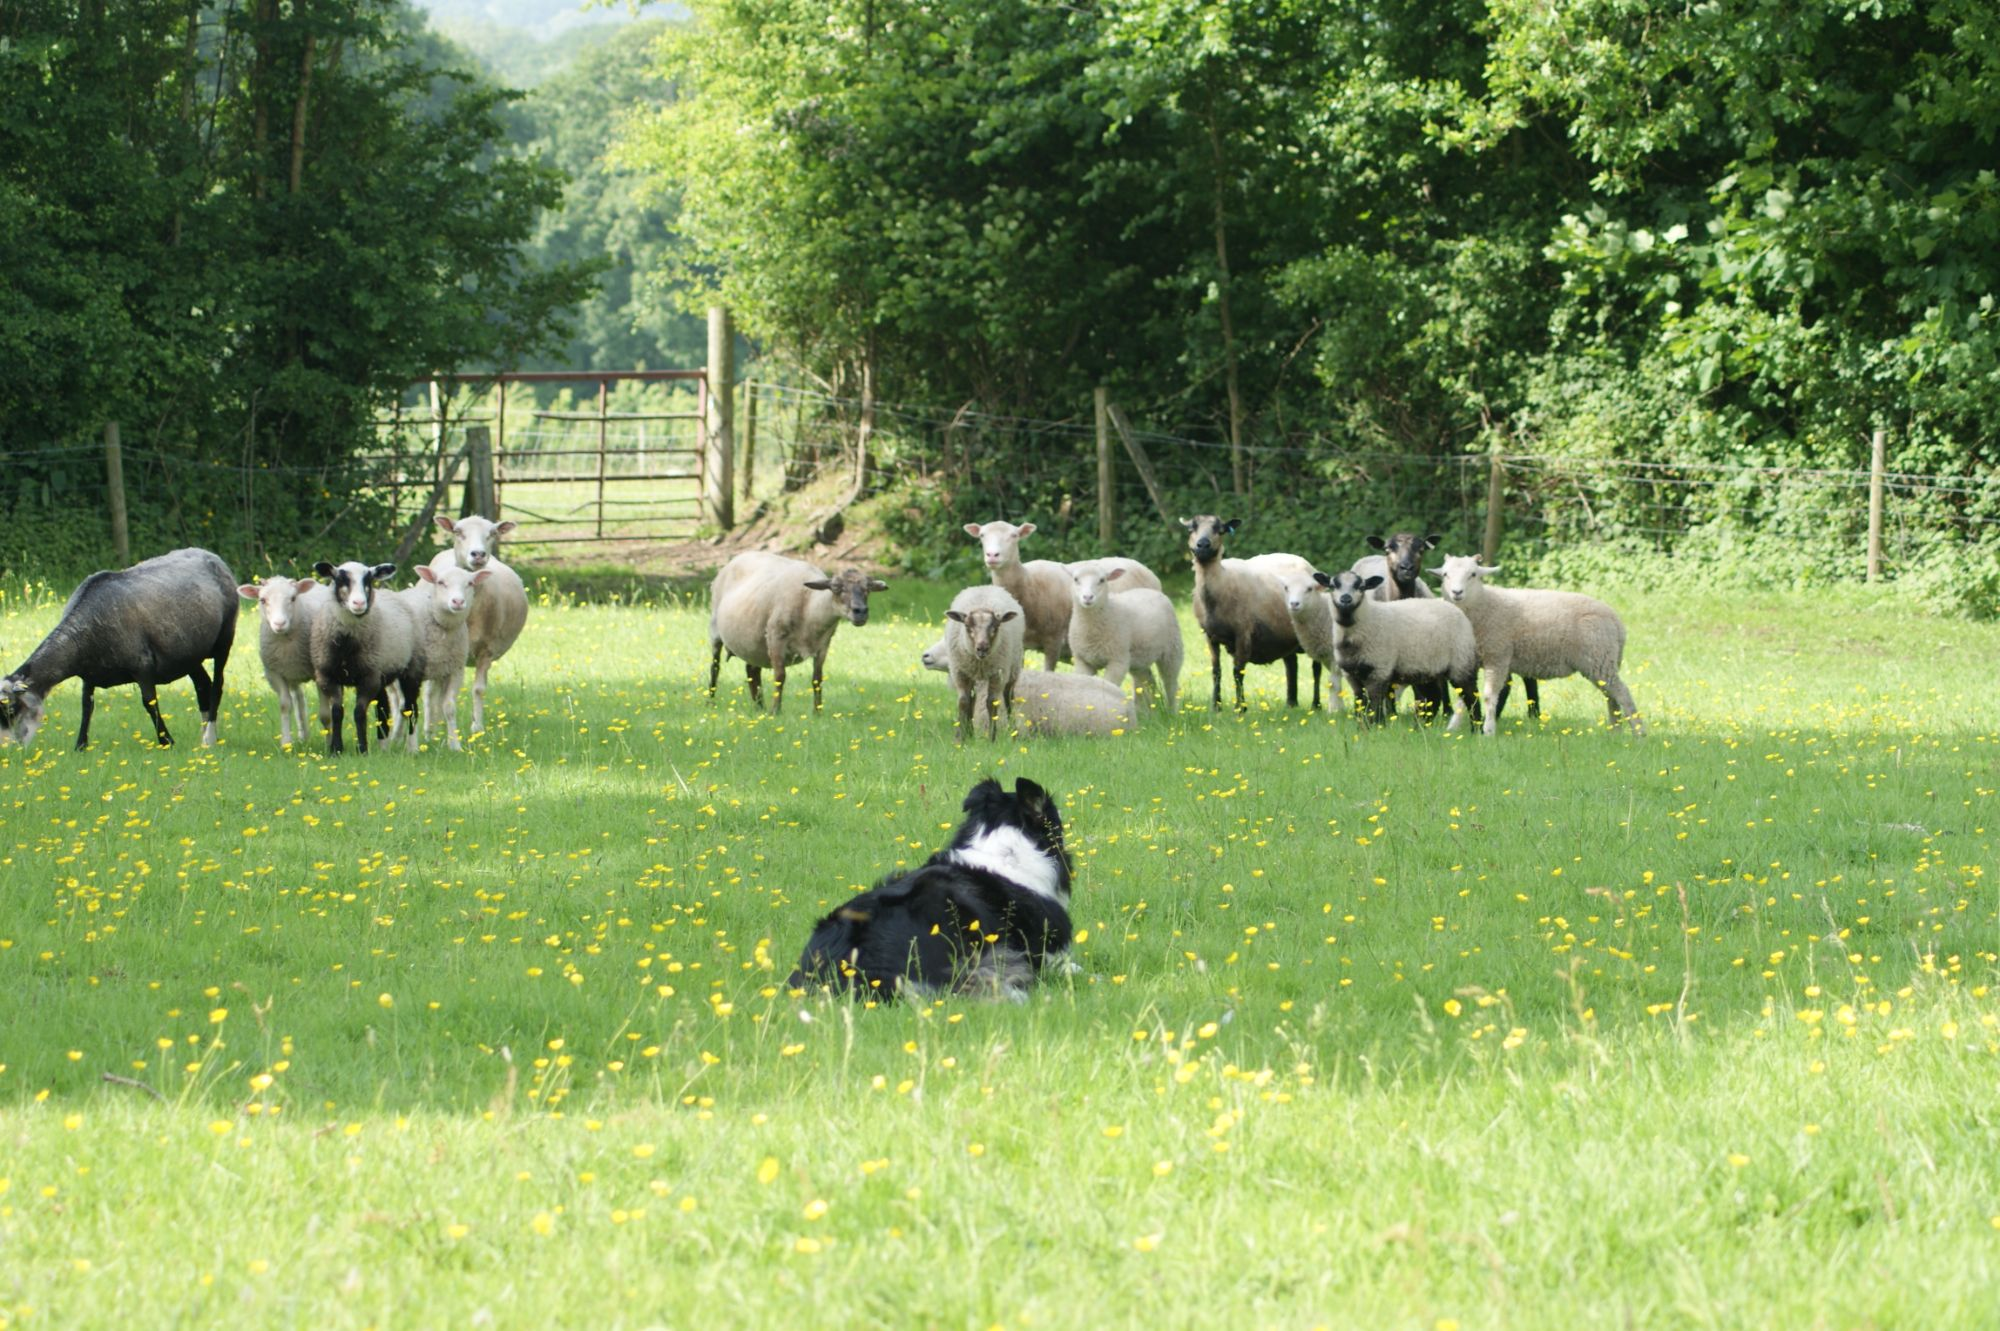 Sheep dog in charge